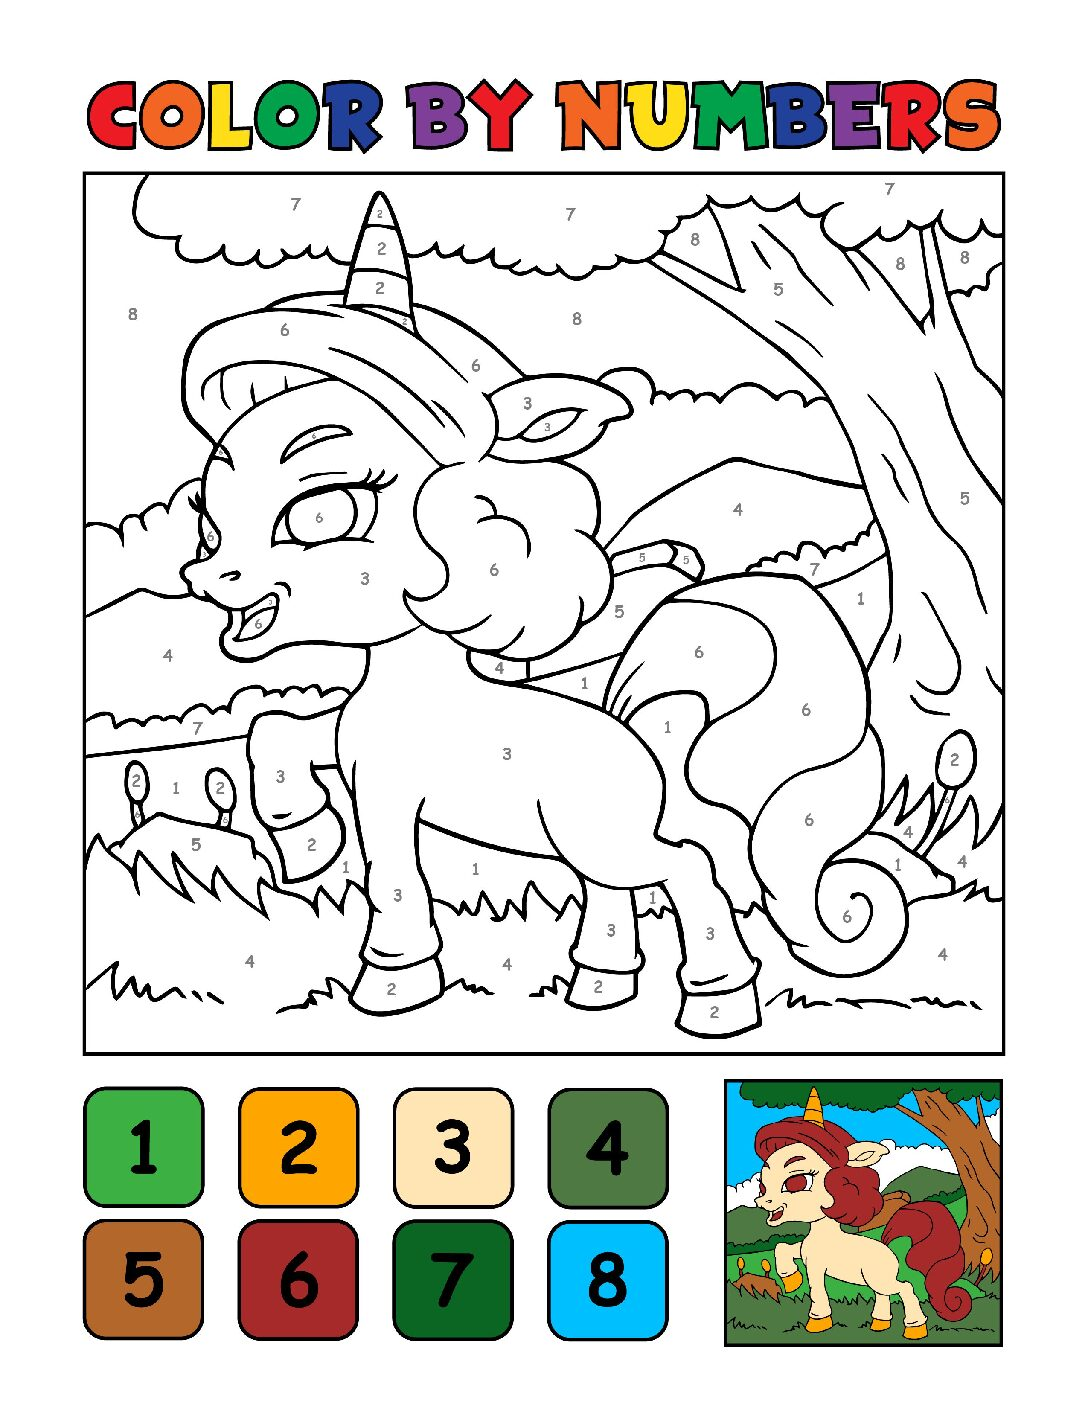 Color-by-Numbers-Kids_Unicorns-6-01-pdf Free Printable Unicorn Colouring Pages